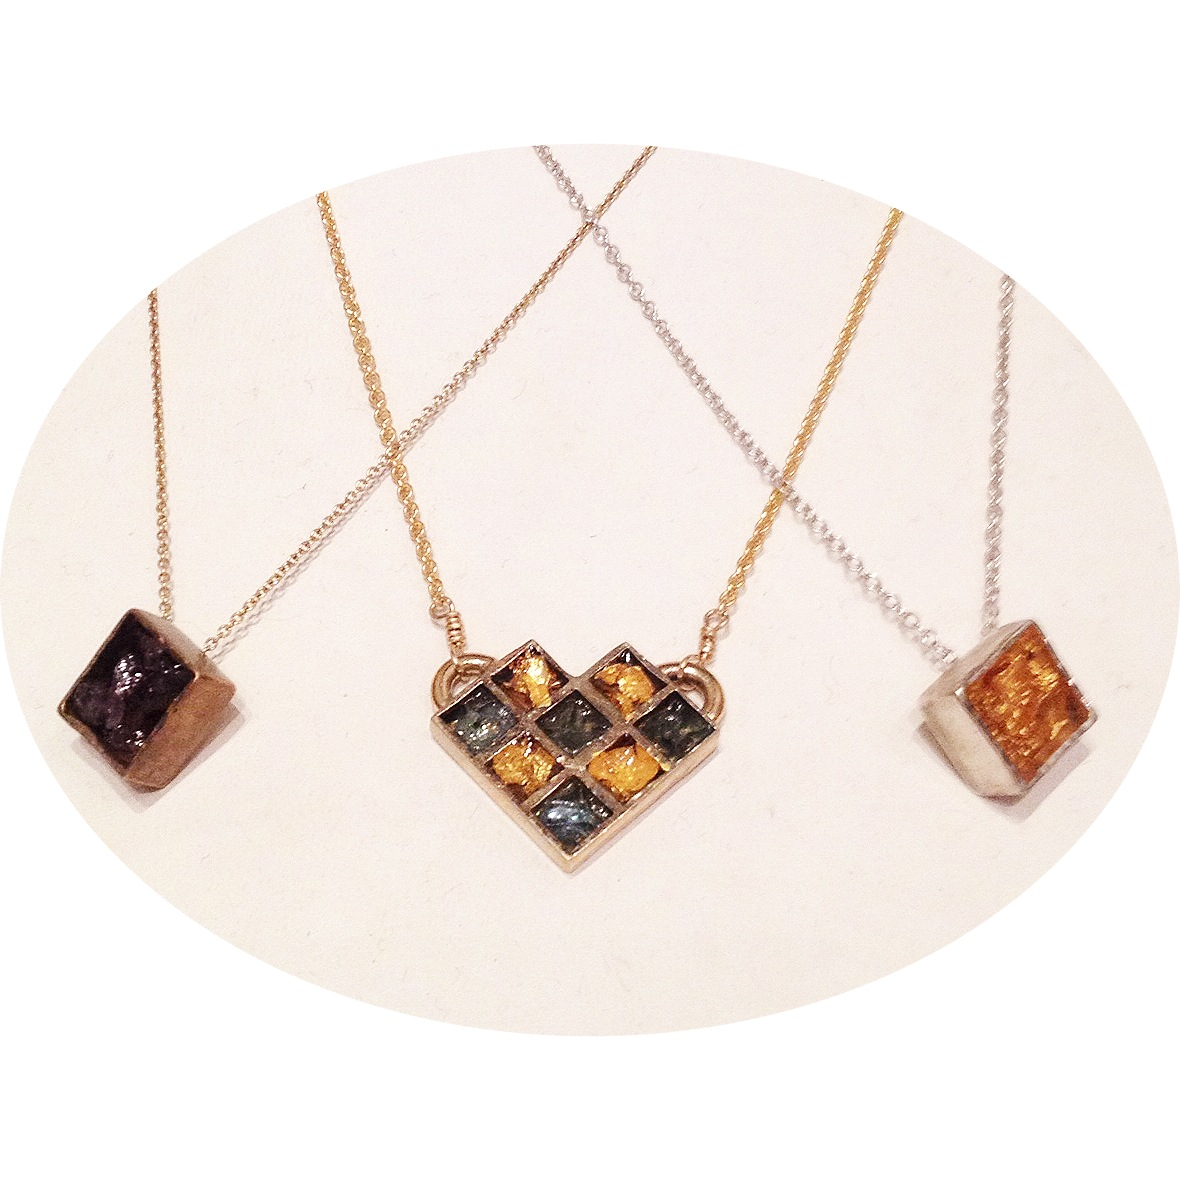 Signature resin pieces spawned the new Honeycomb Series (center). From left: bronze with crushed amethyst, bronze honeycomb with 24-karat gold leaf & crushed green glass, sterling silver with 24-karat gold leaf.